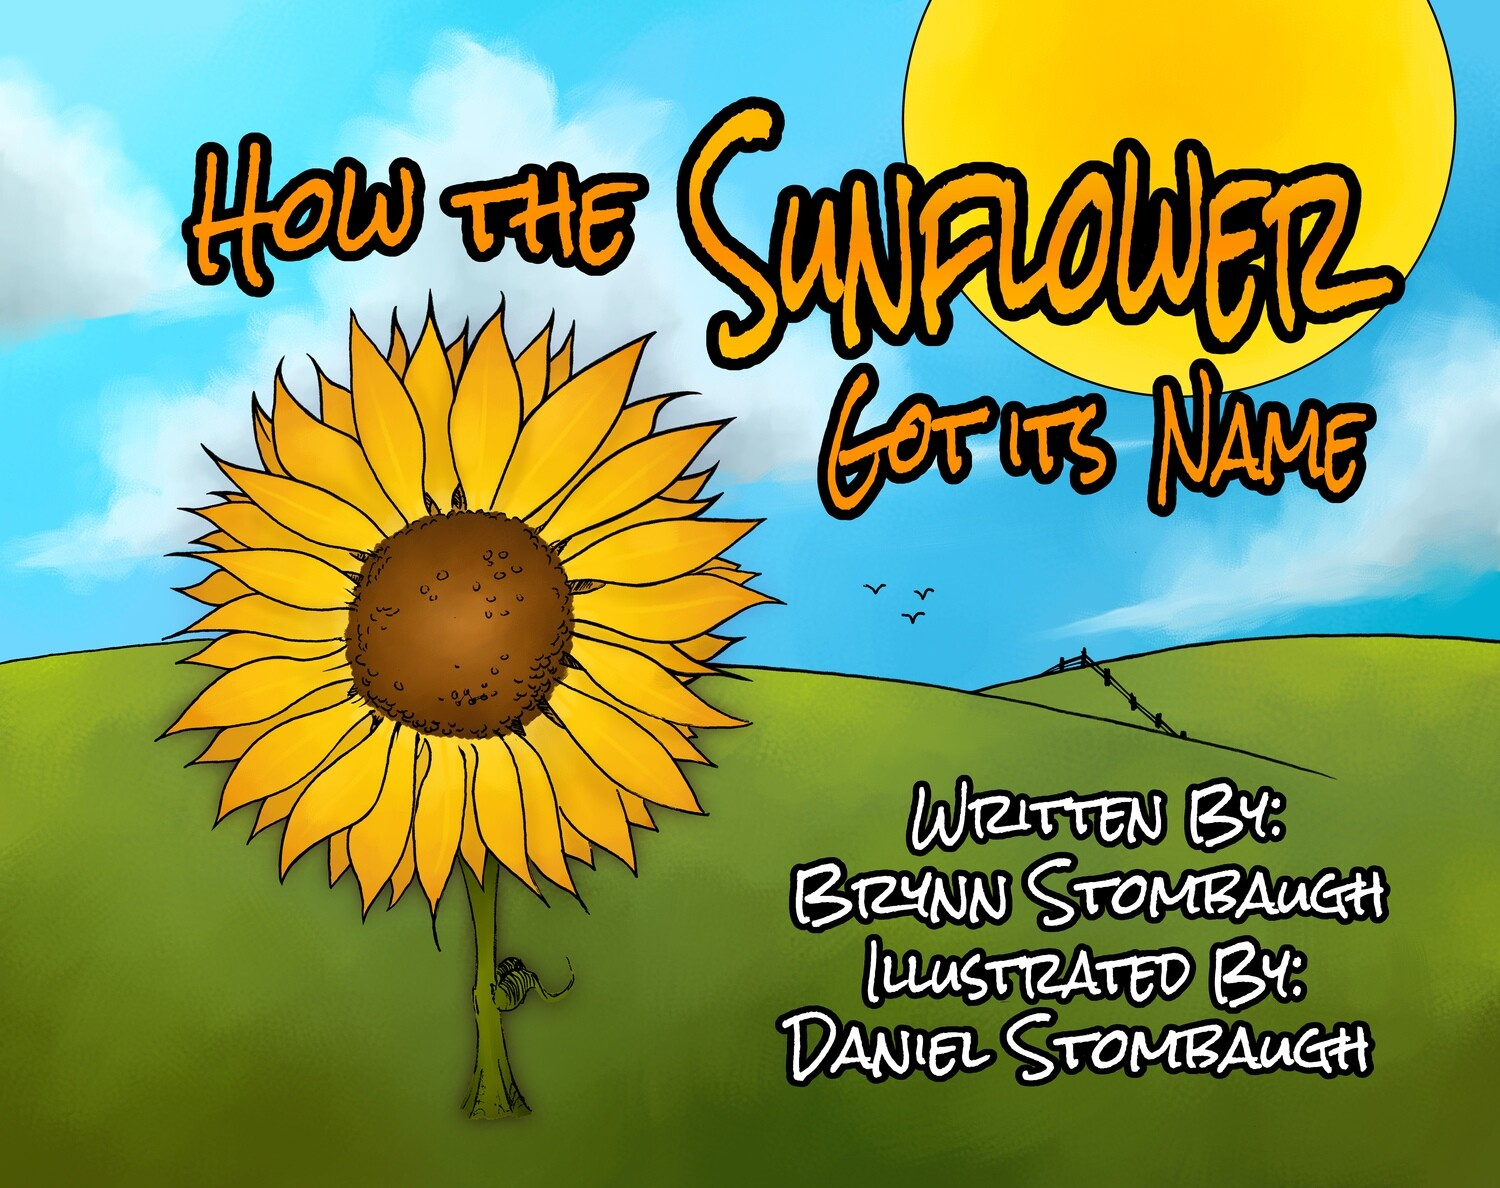 How The Sunflower Got Its Name